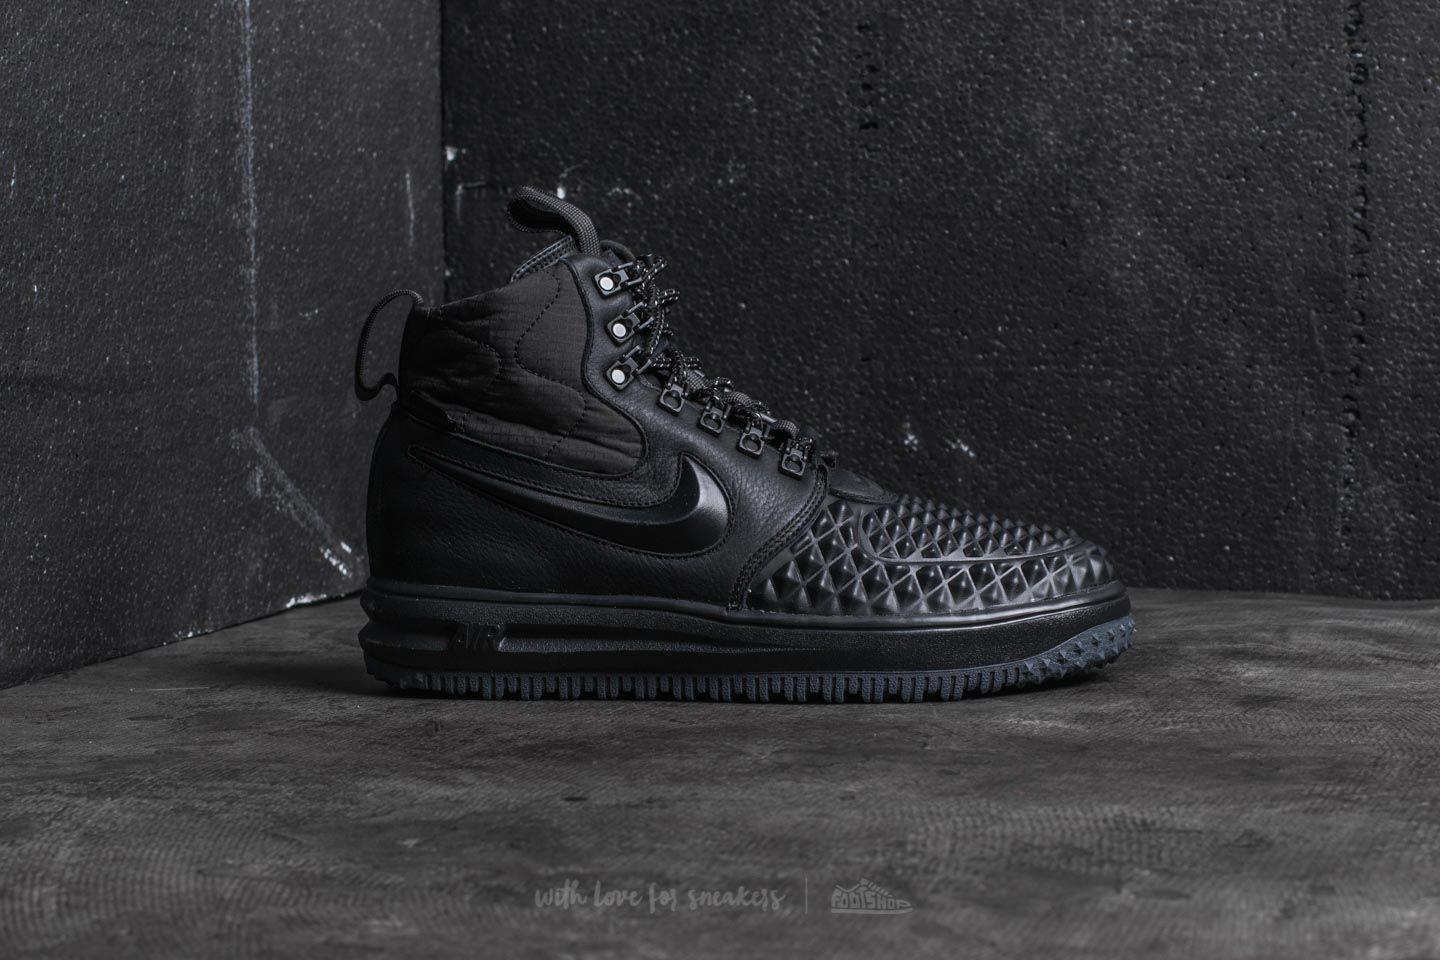 low cost 4f2cb 0333a Nike Lunar Force 1 Duckboot ́17 Black  Black-anthracite in Black for ...